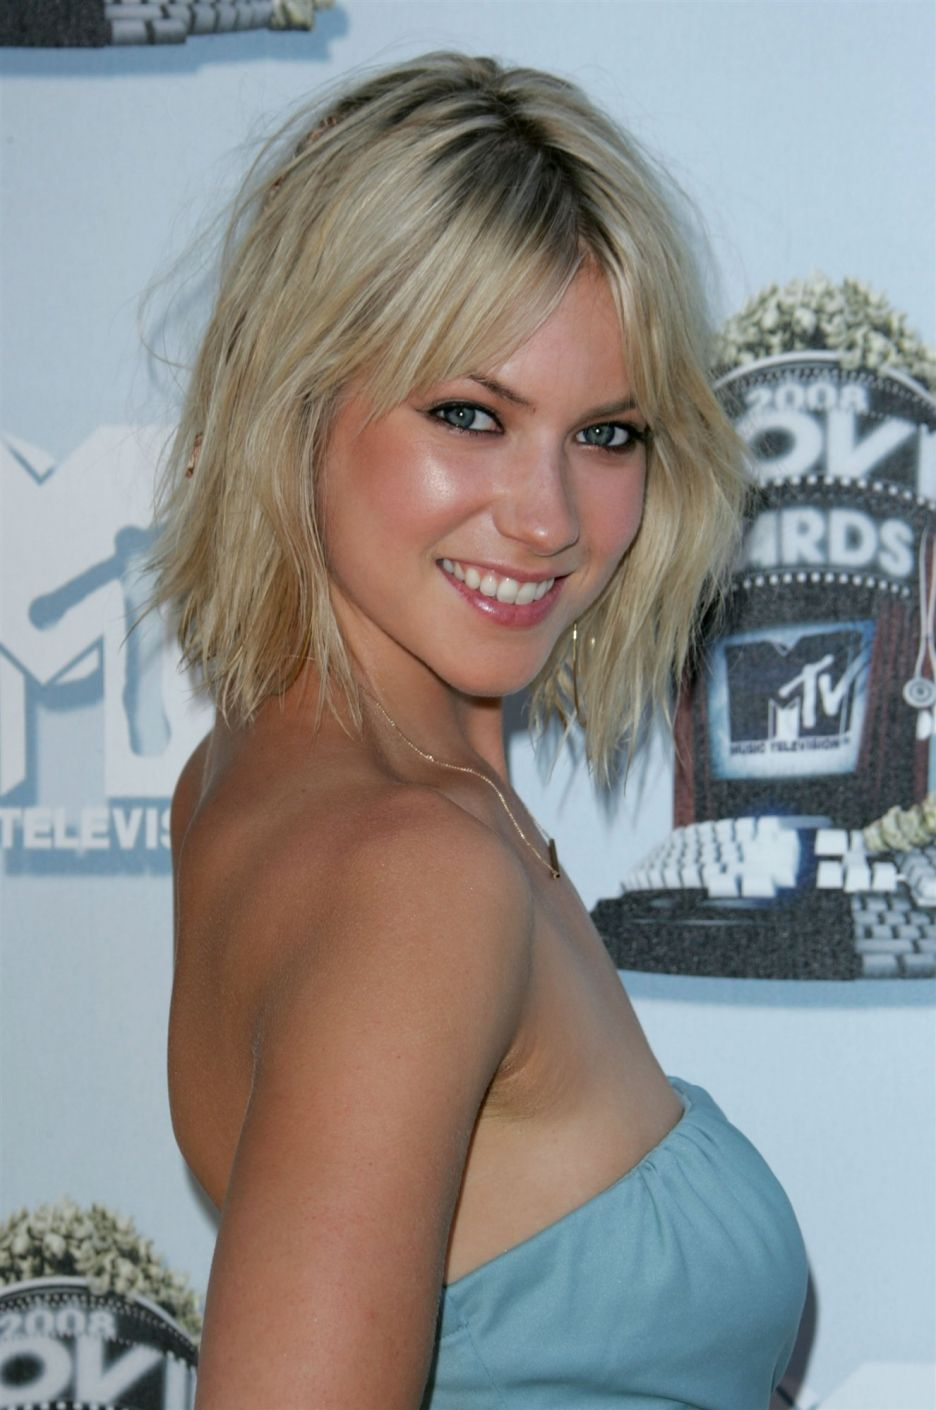 laura ramsey official instagramlaura ramsey photo, laura ramsey boxrec, laura ramsey instagram, laura ramsey official instagram, laura ramsey instagram actress, laura ramsey, laura ramsey married, laura ramsey imdb, laura ramsey boyfriend, laura ramsey wiki, laura ramsey white collar, laura ramsey husband, laura ramsey jewelry, laura ramsey hindsight